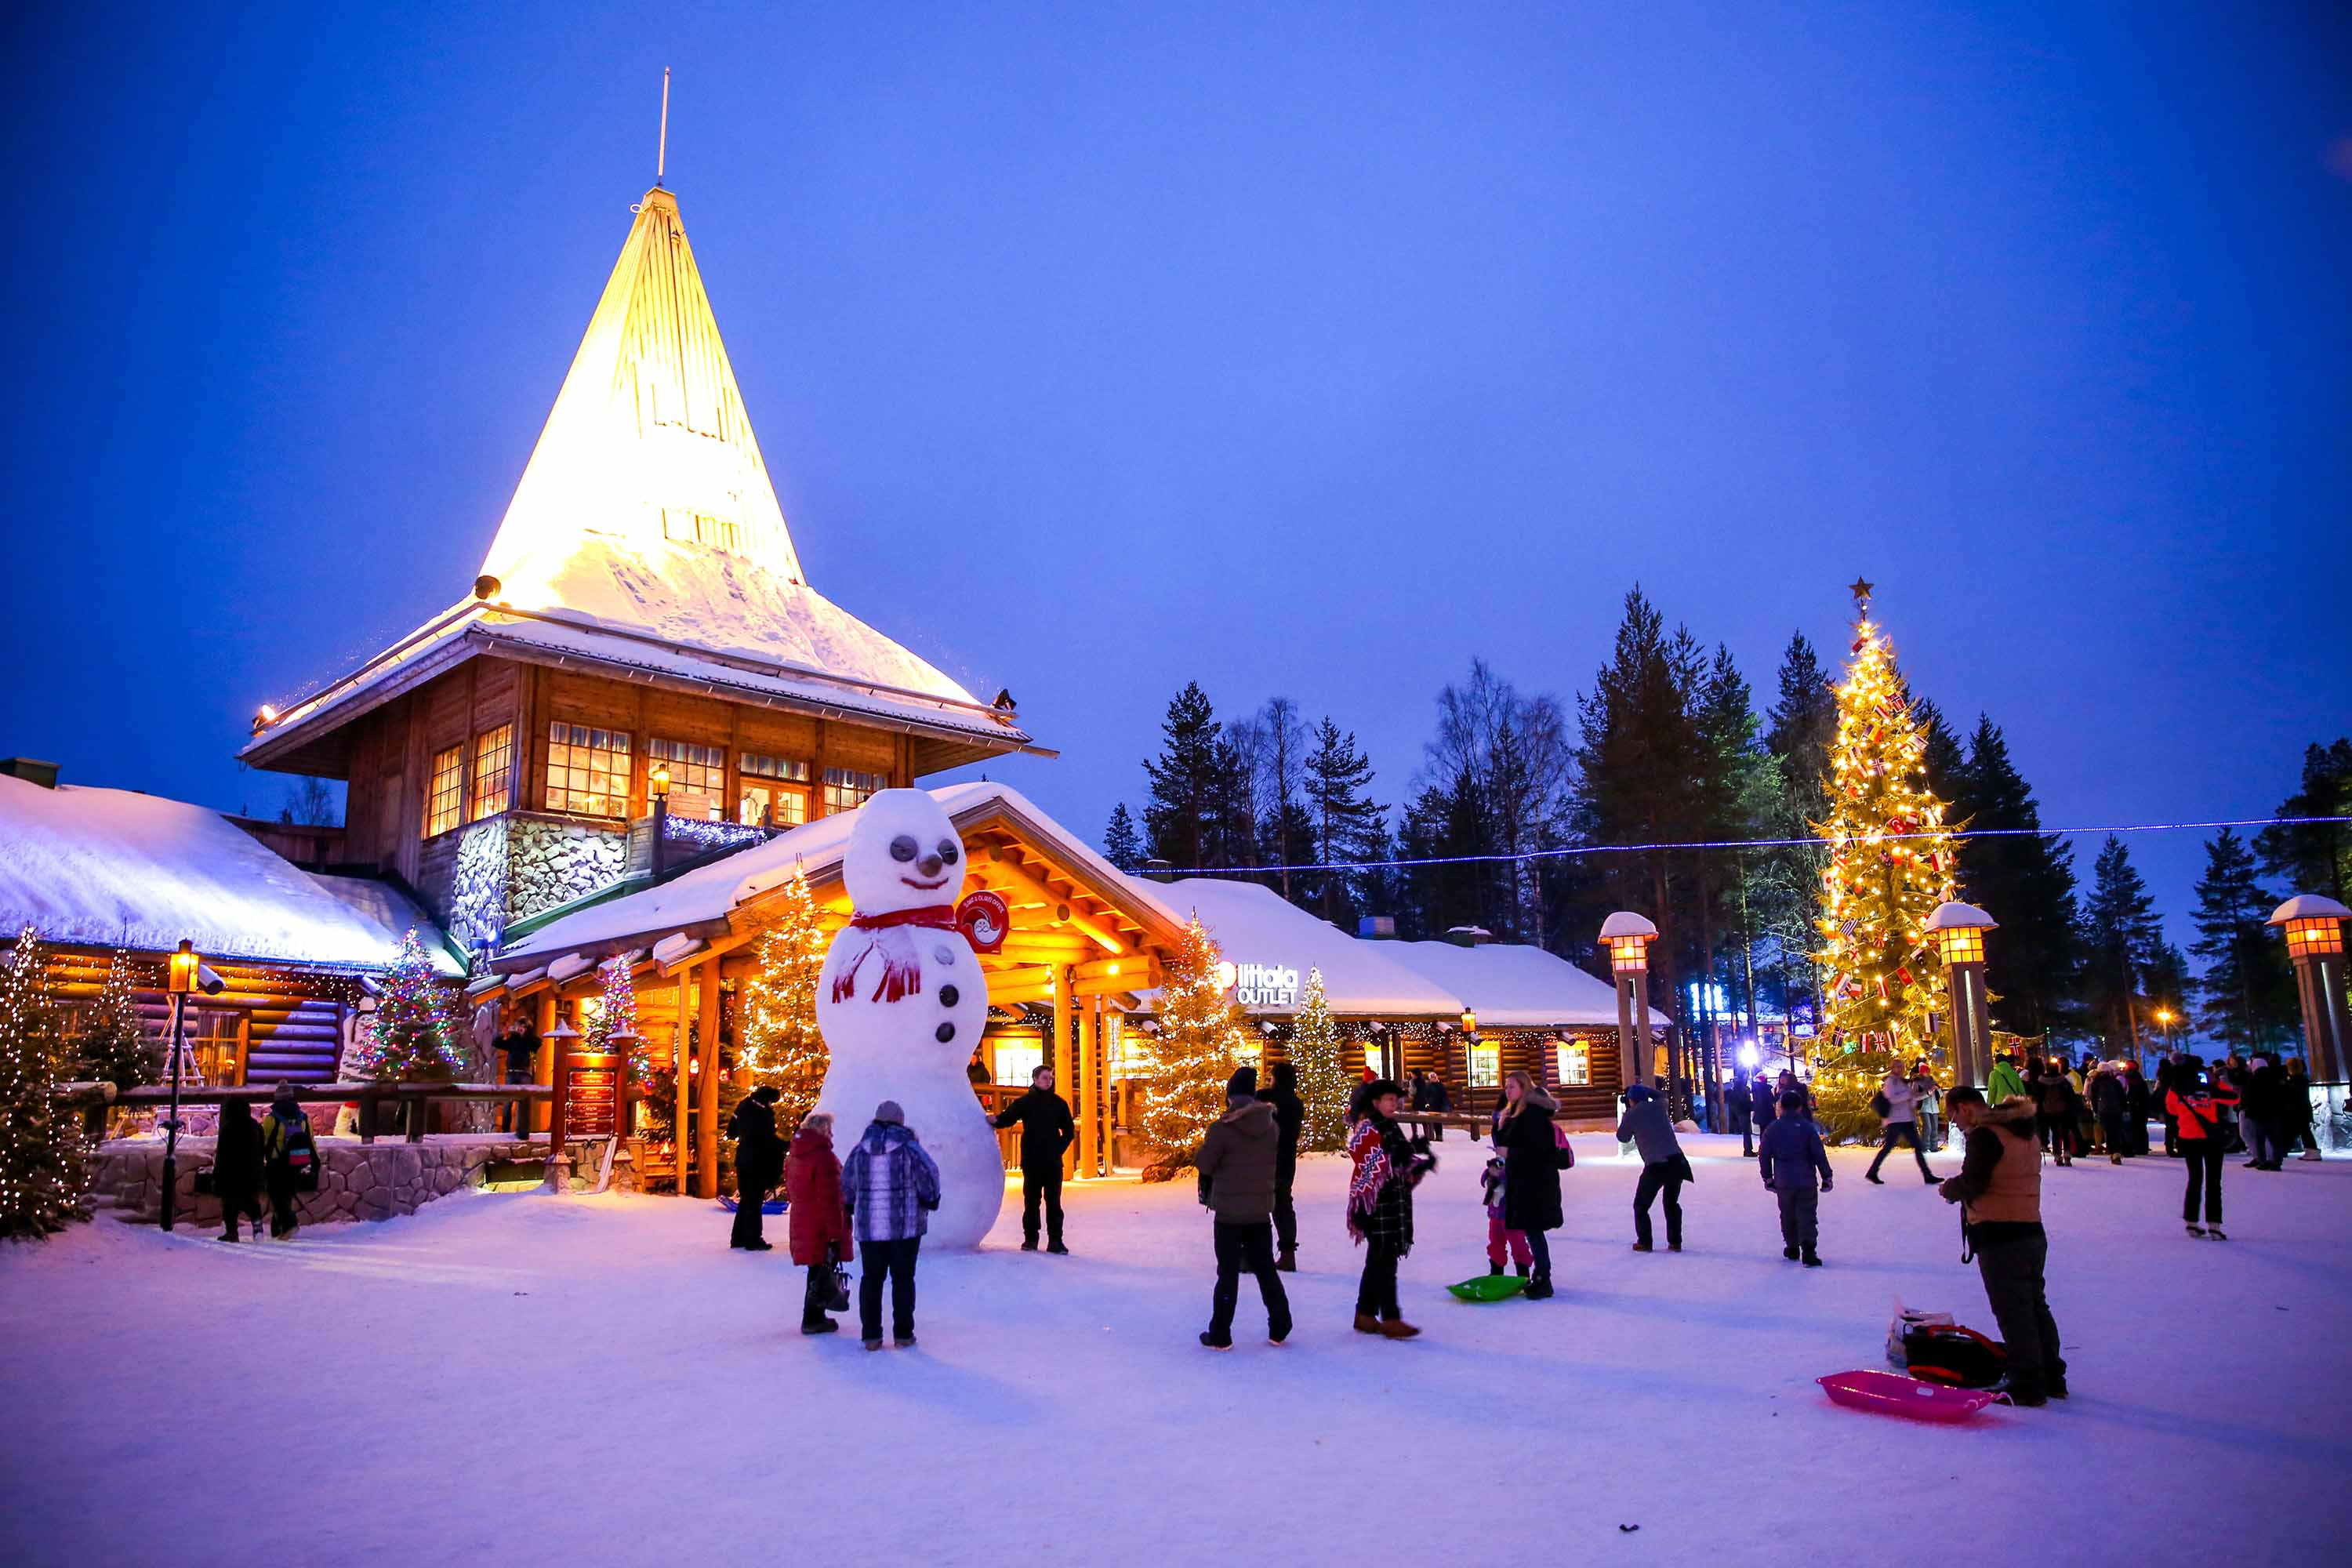 Lapland s lack of snow triggers holiday worries in Finland  700929e64